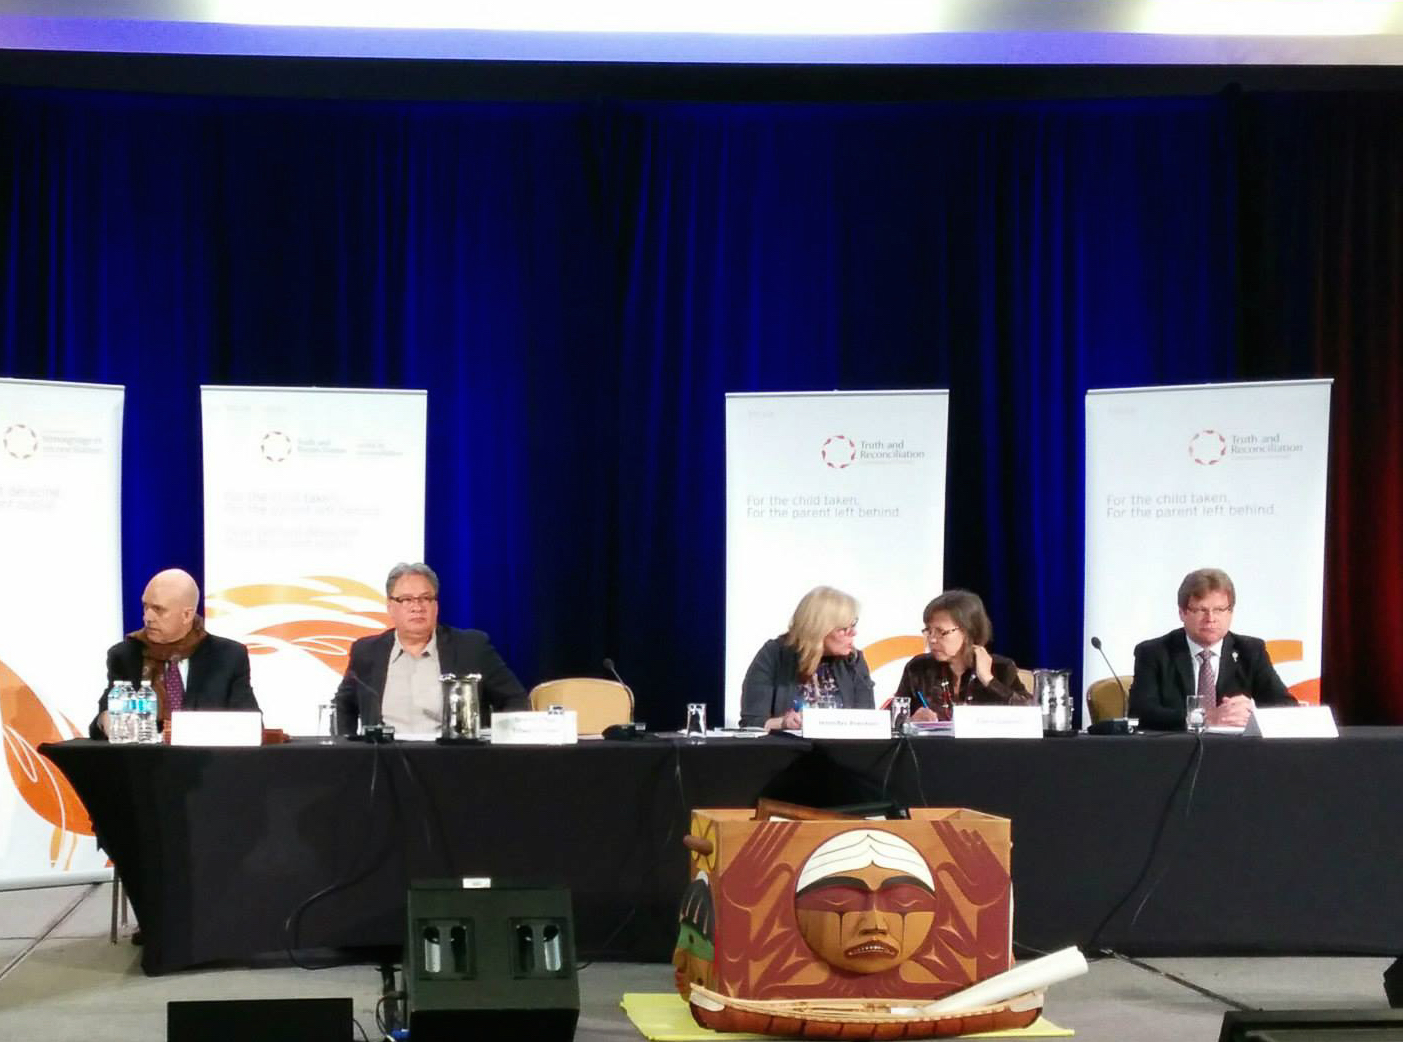 """Coalition members speaking on a panel on """"The UN Declaration on the Rights of Indigenous Peoples: Justice, Reconciliation and Hope,"""" at the Truth and Reconciliation Commission closing events in 2015."""